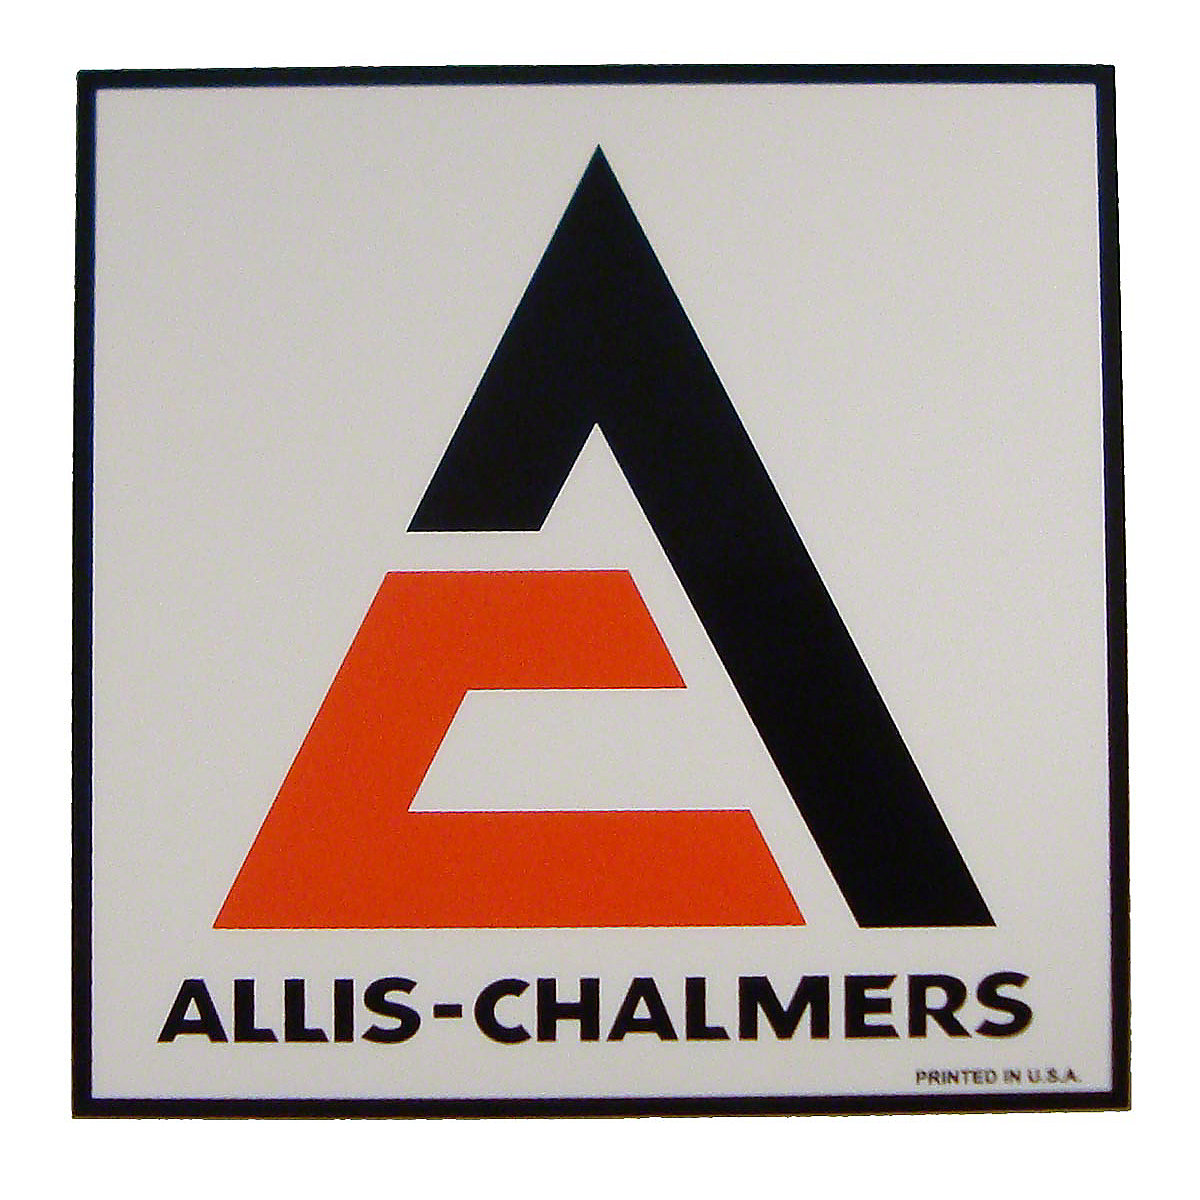 Post about all the AC Logos? - AllisChalmers Forum